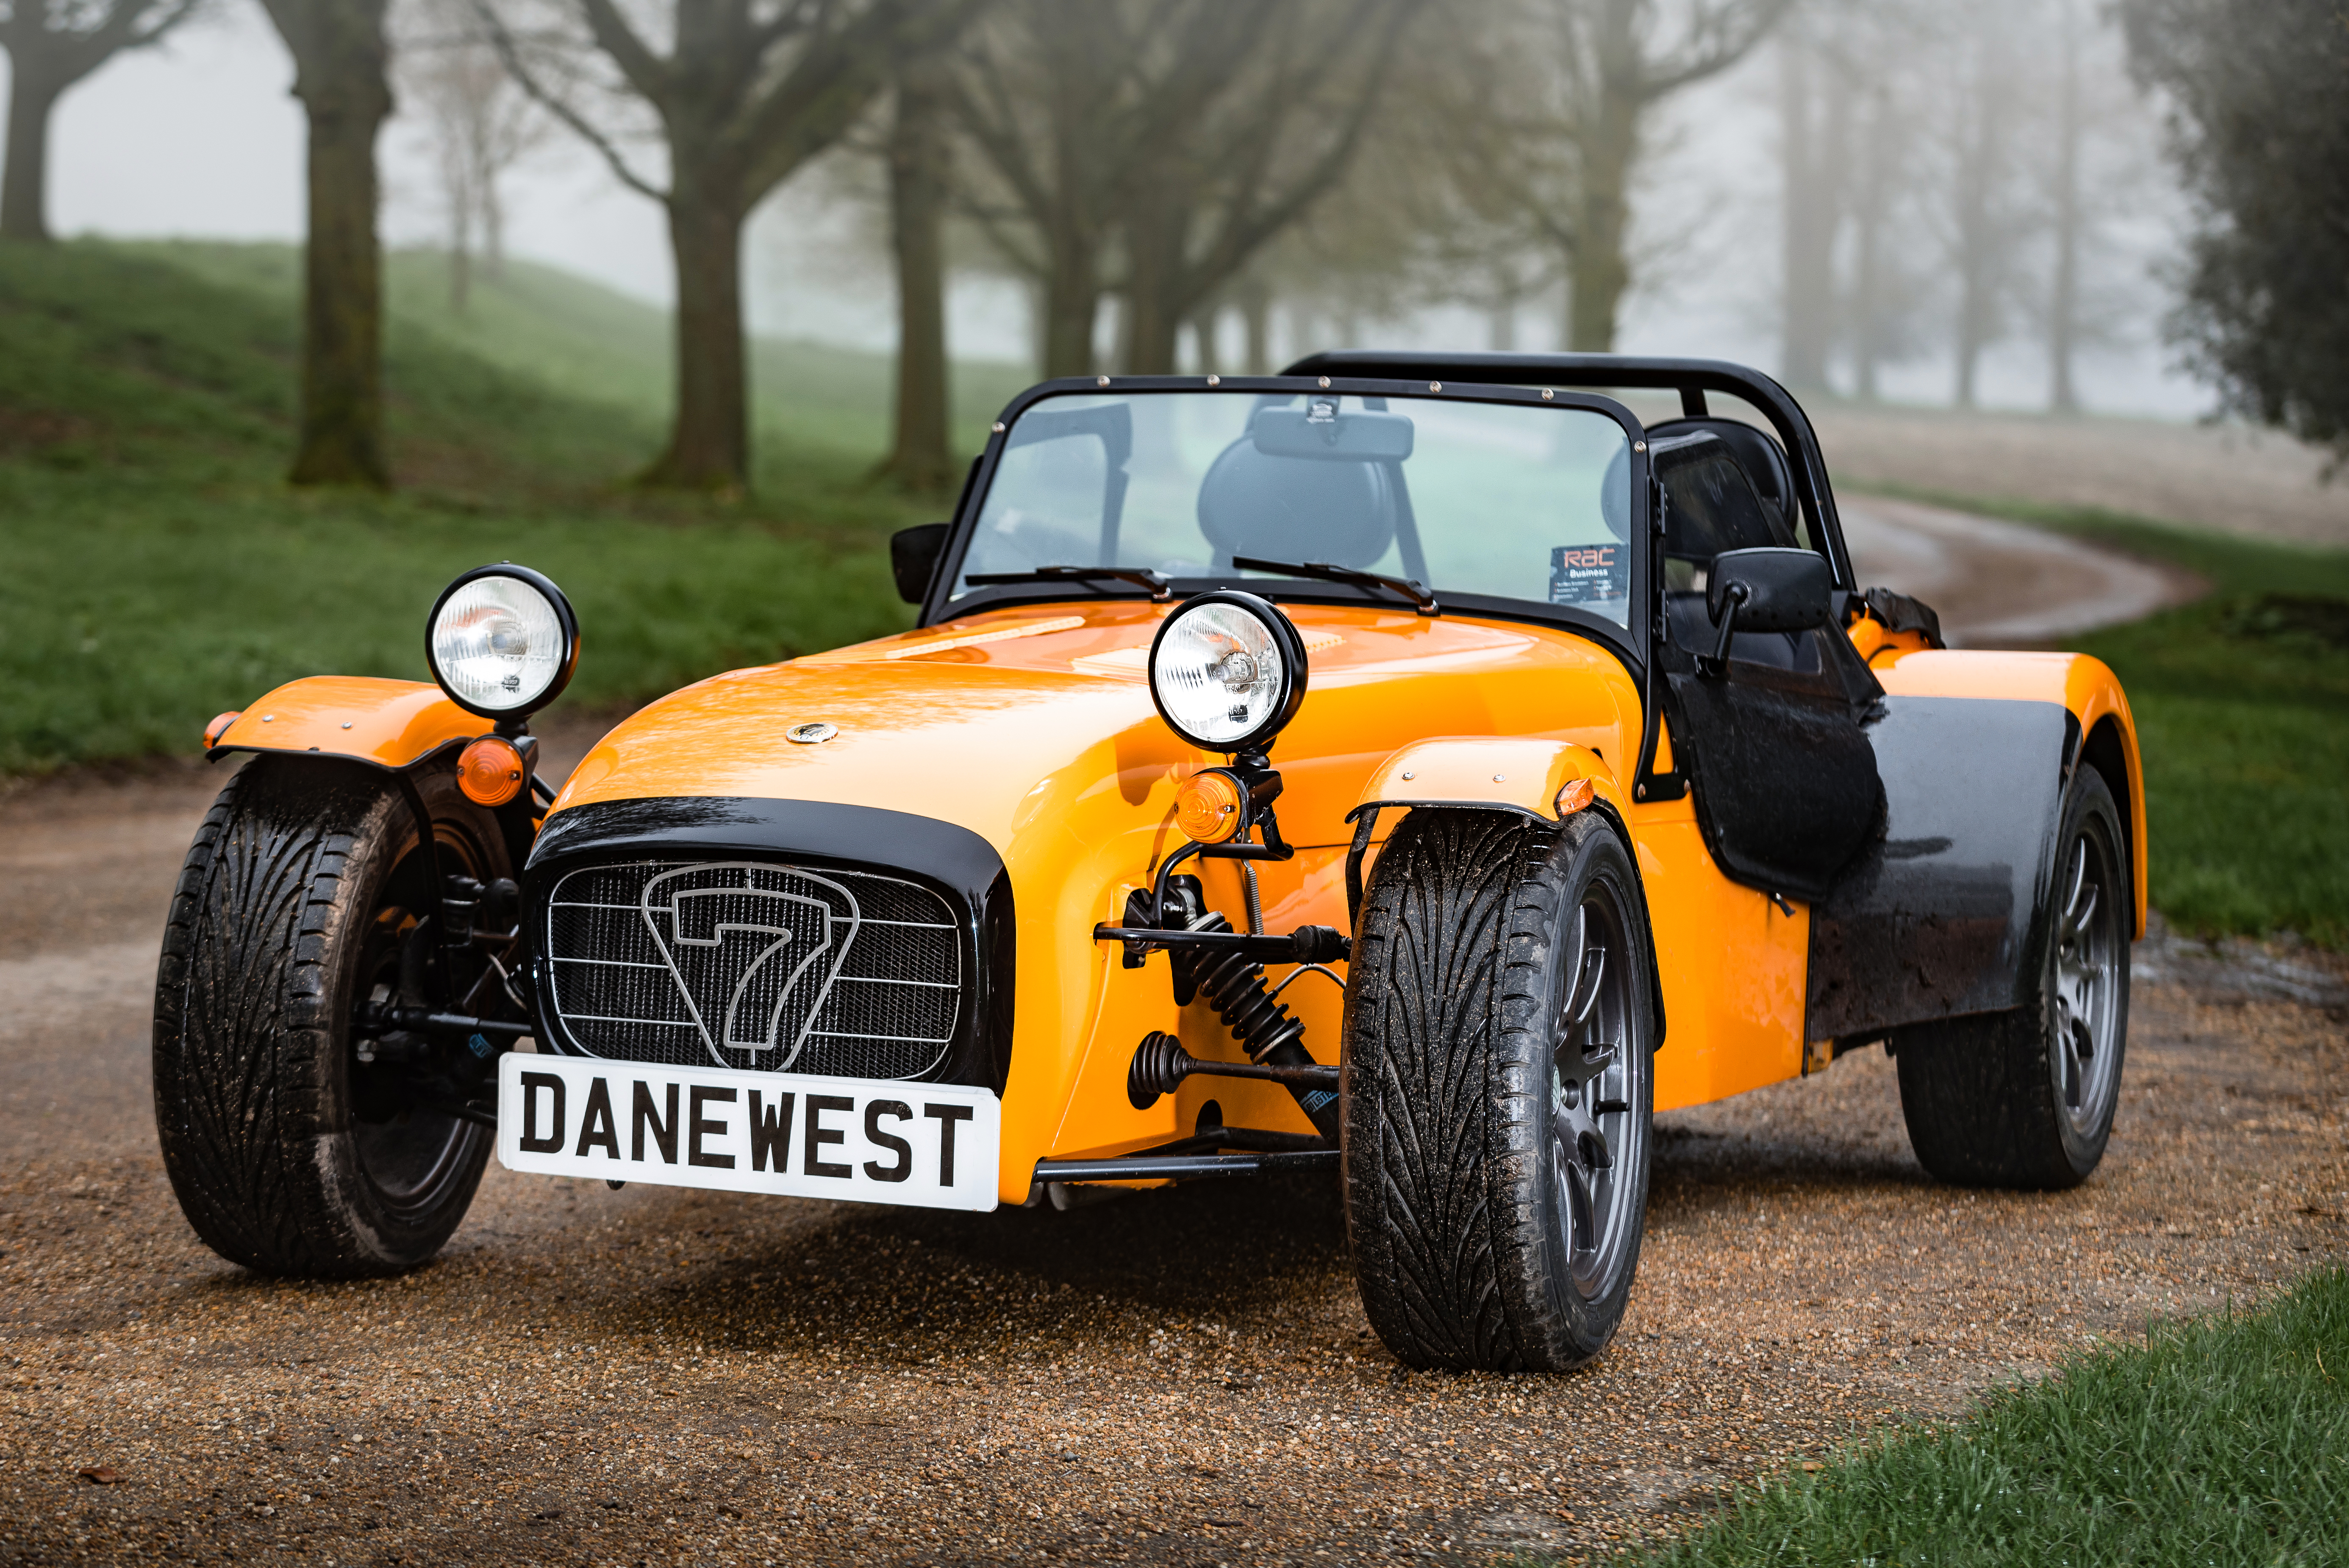 1998 Caterham Super seven